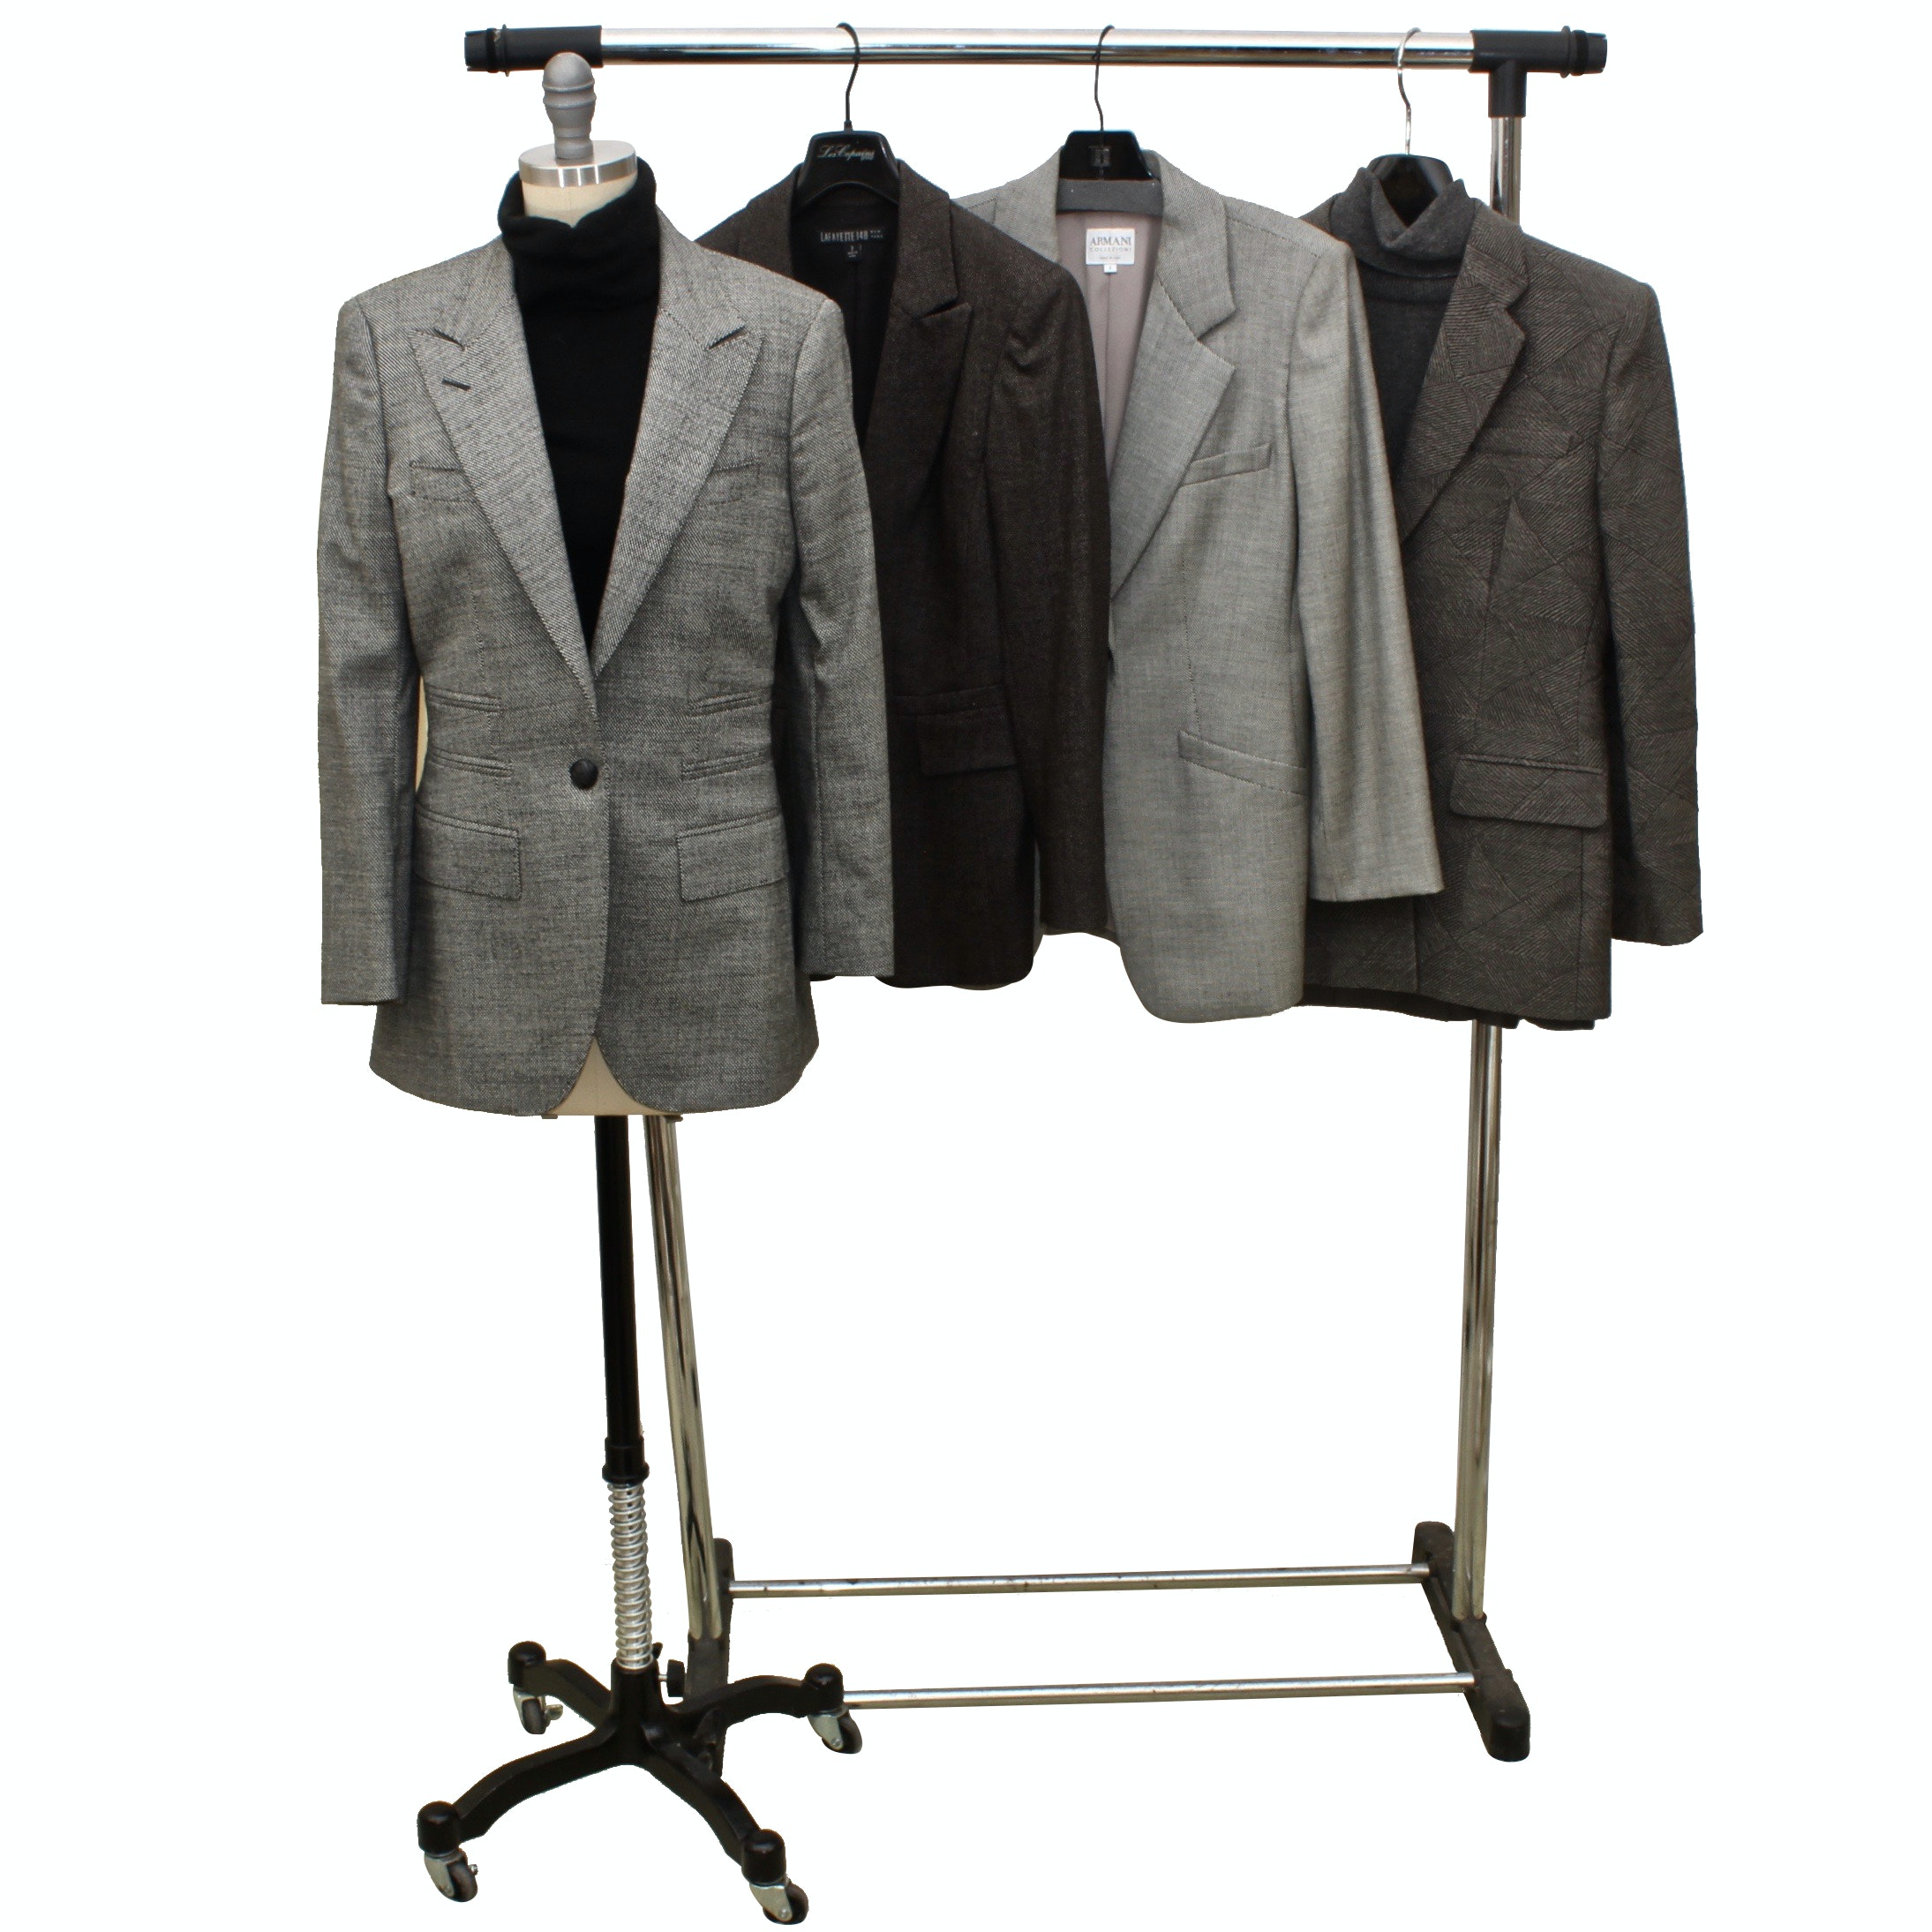 Women's Suit Jackets and Separates by Giambattista Valli, Armani and More